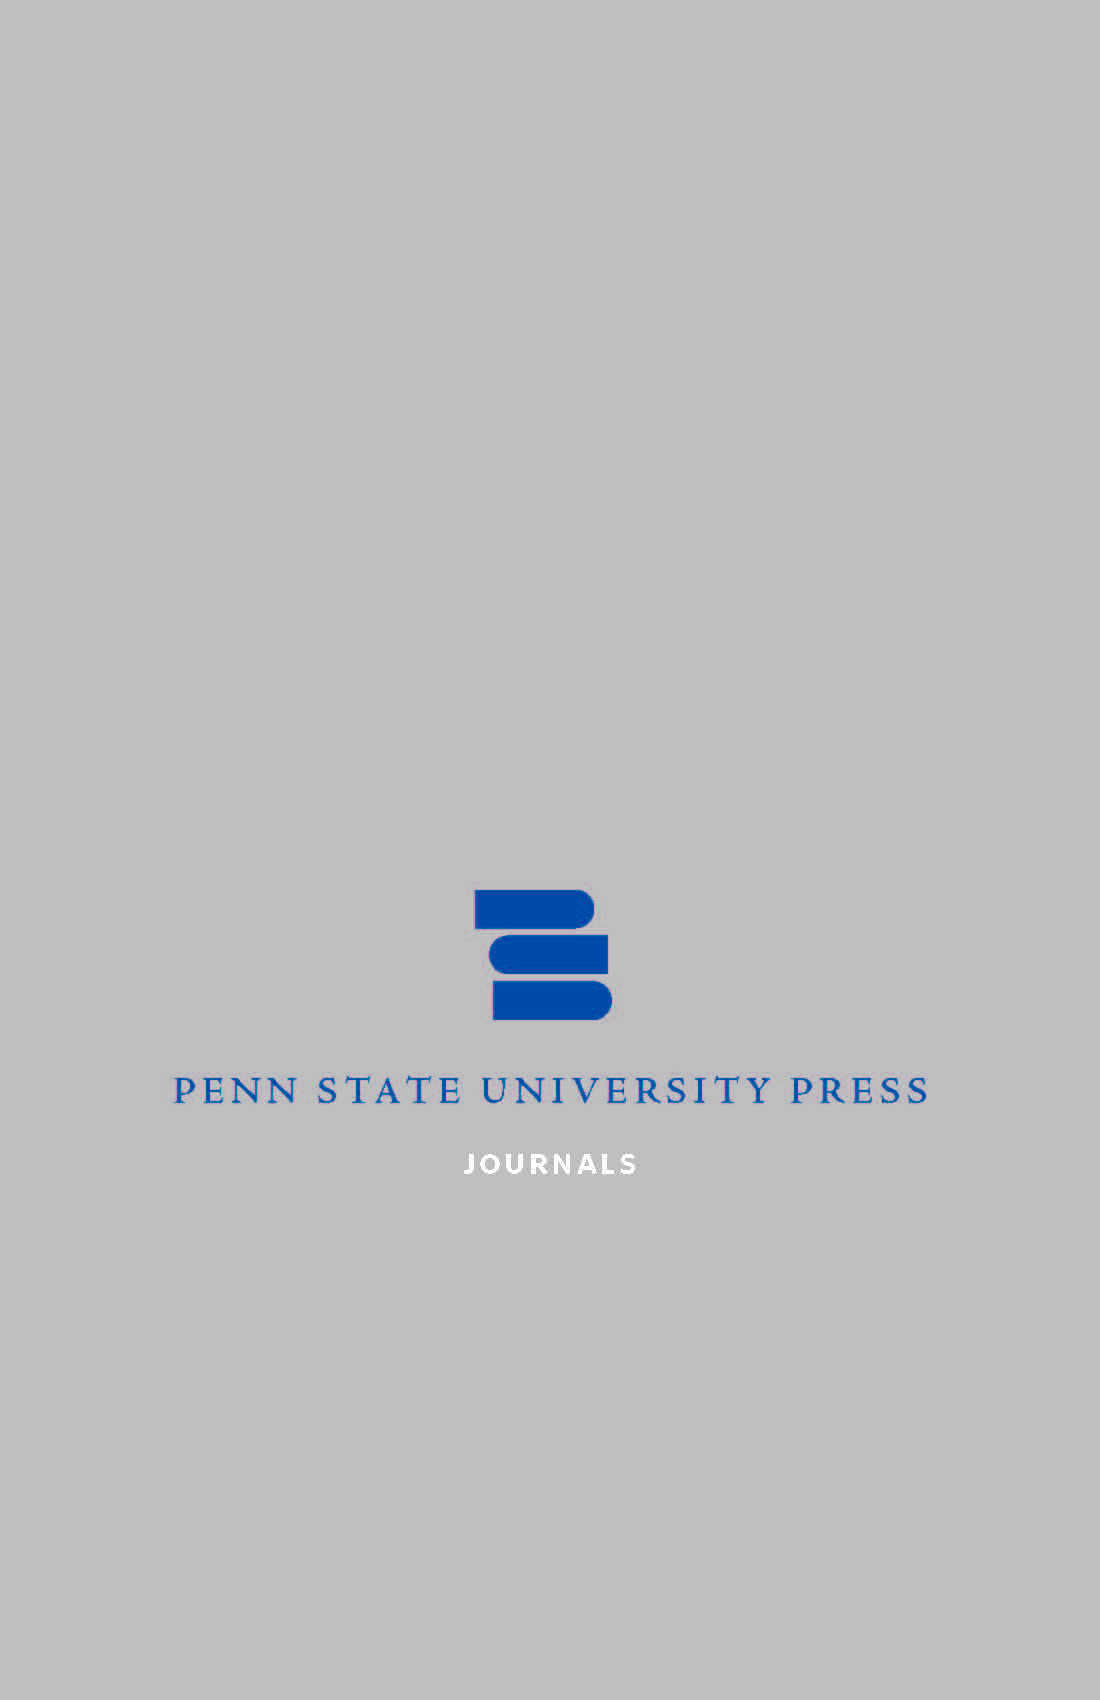 Cover for PSU Press Journals